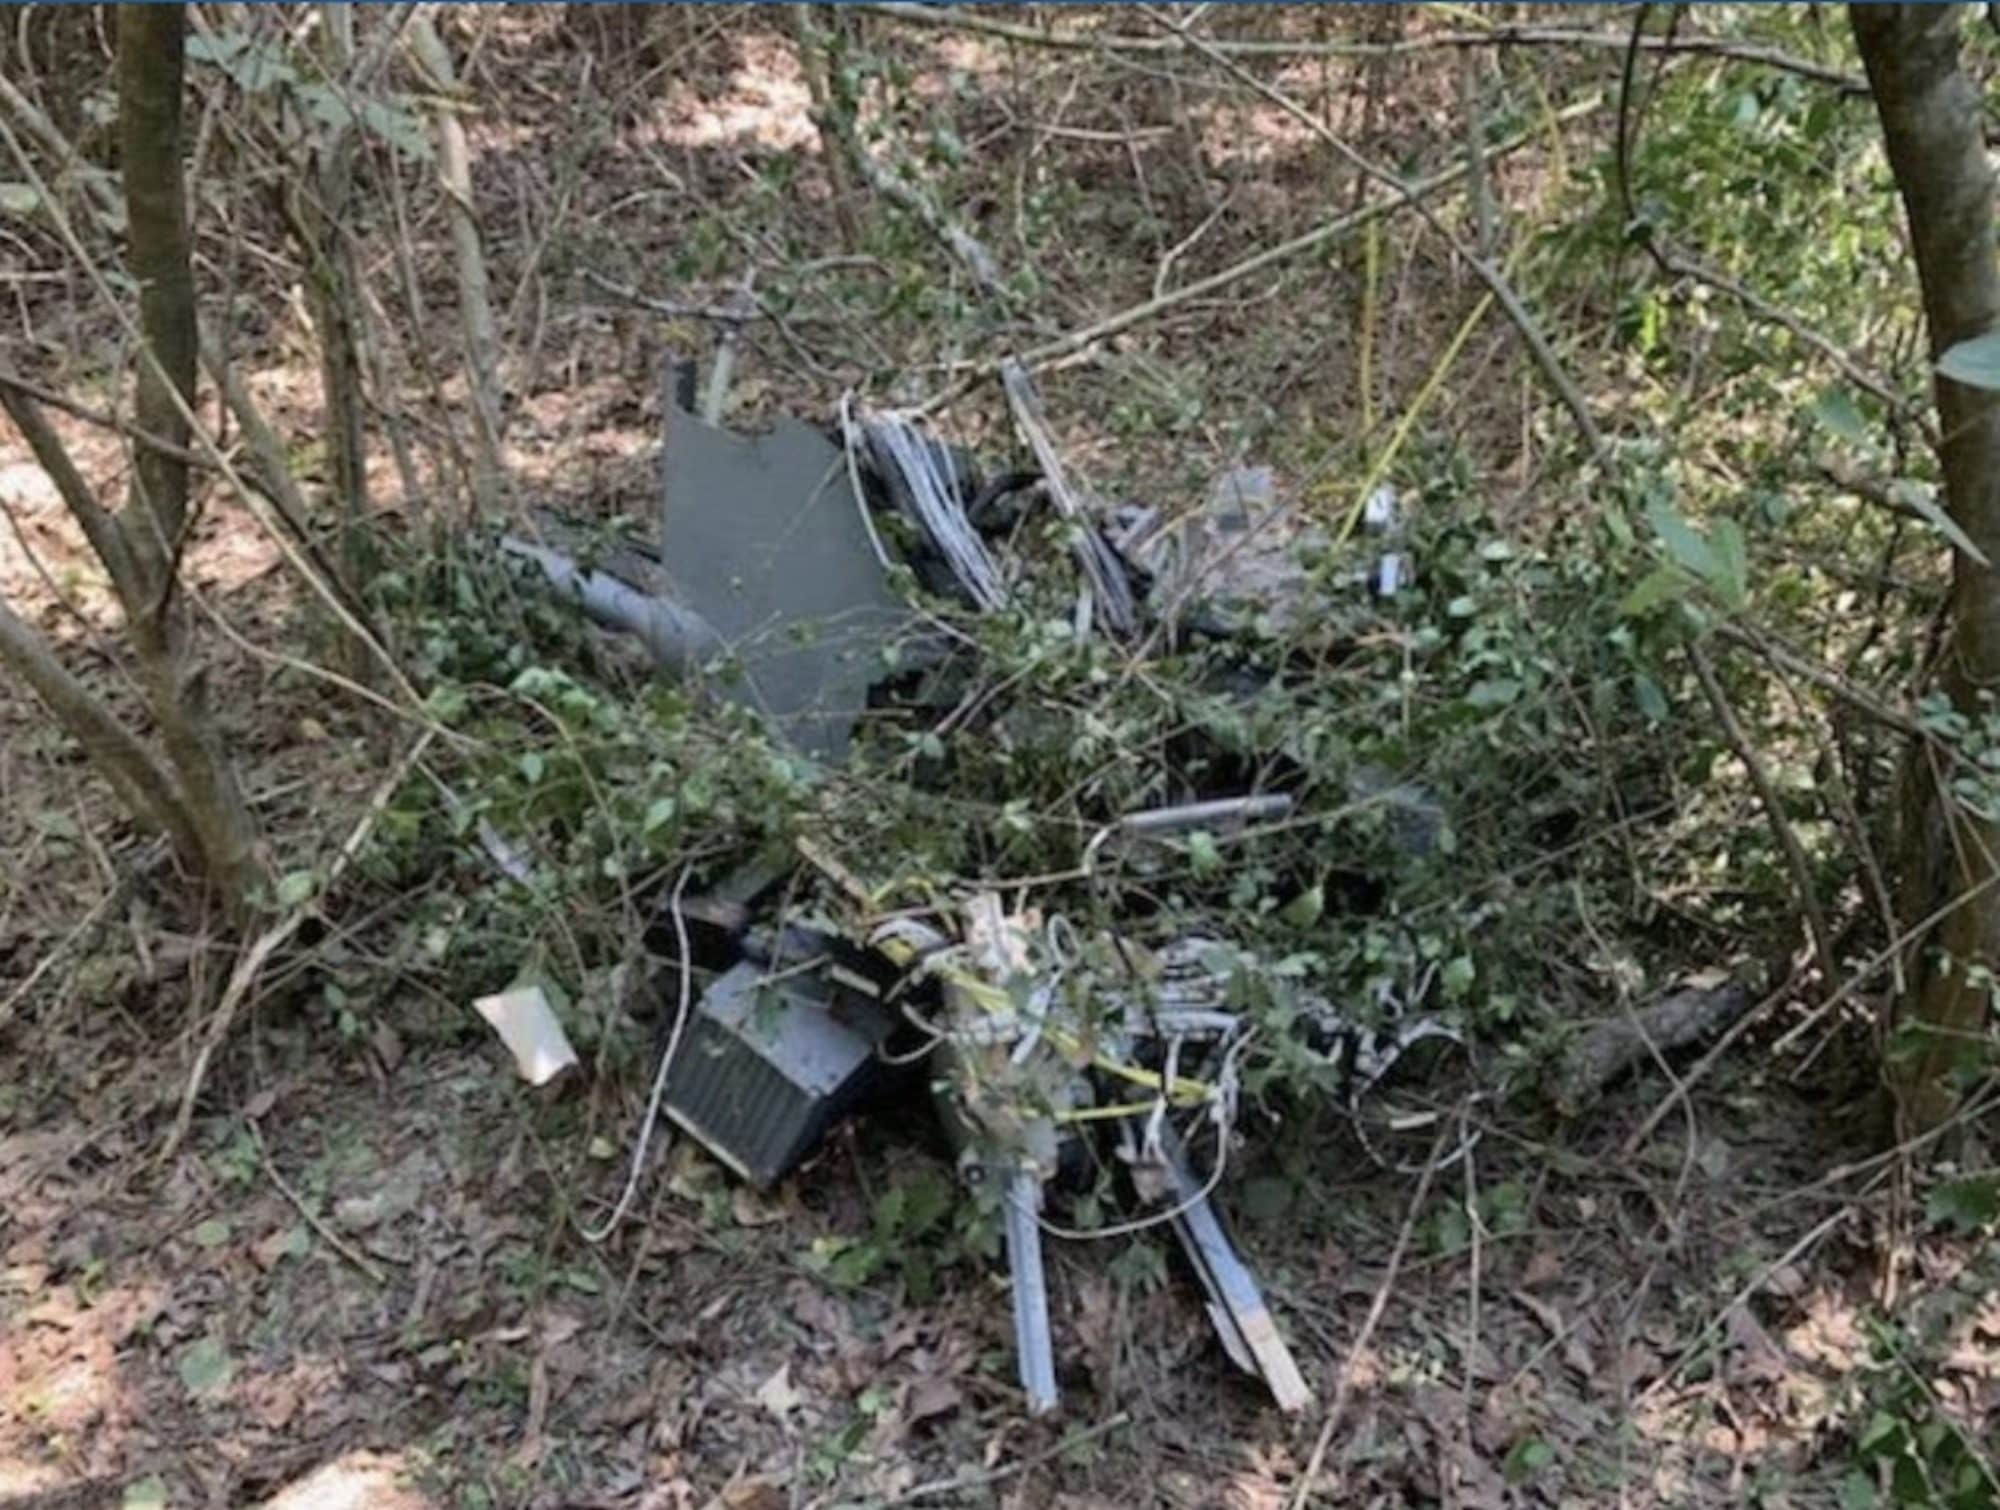 460-pound drone flown by Arkansas Army National Guard crashed in Lavaca